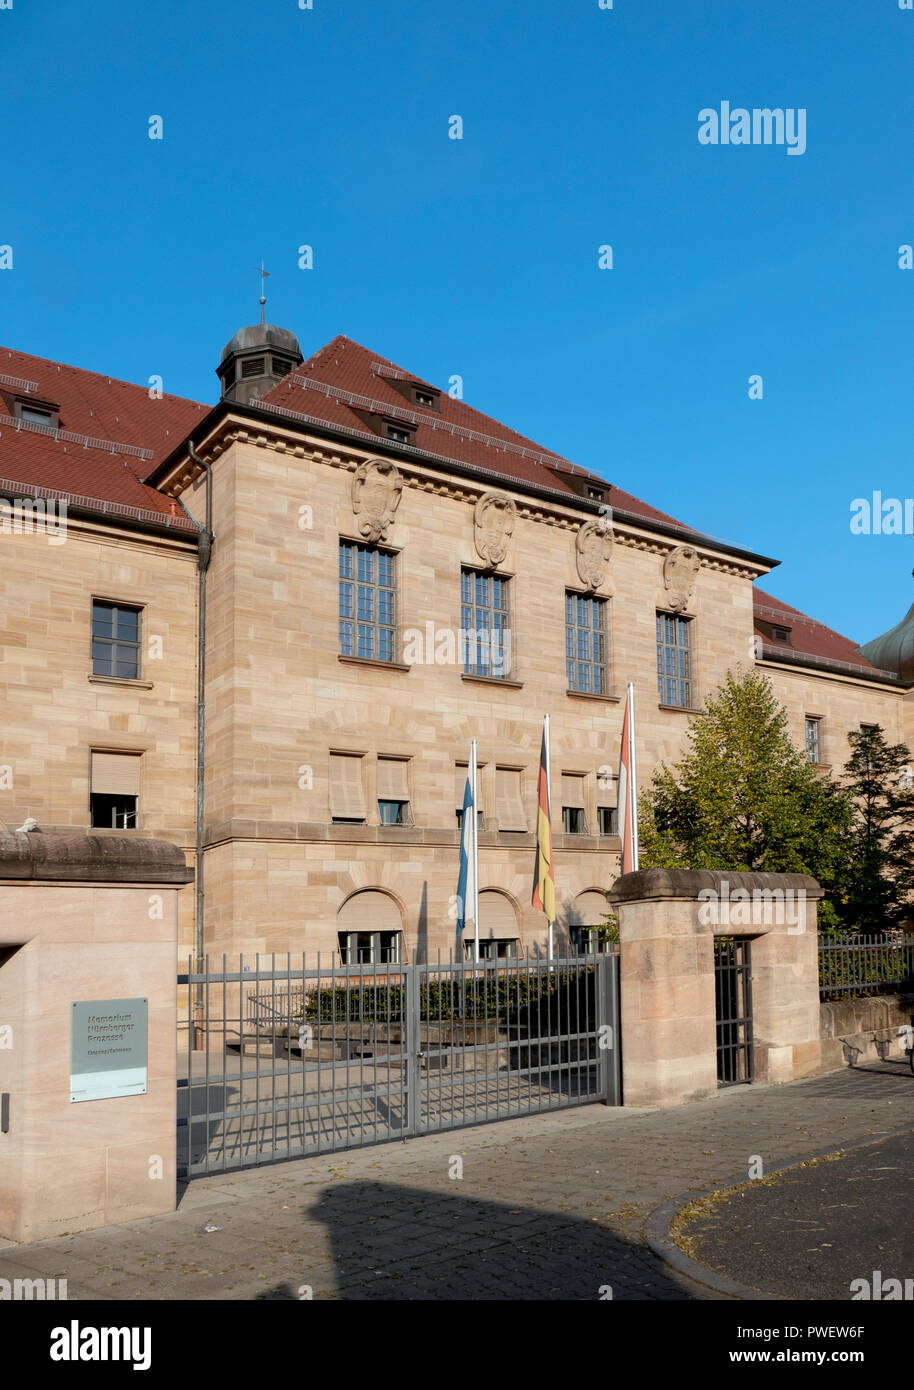 Courtroom 600 at the Palace of Justice in Nuremberg, Germany. Location of the Nuremberg trials of Nazi war criminals including Rudolf Hess. Stock Photo